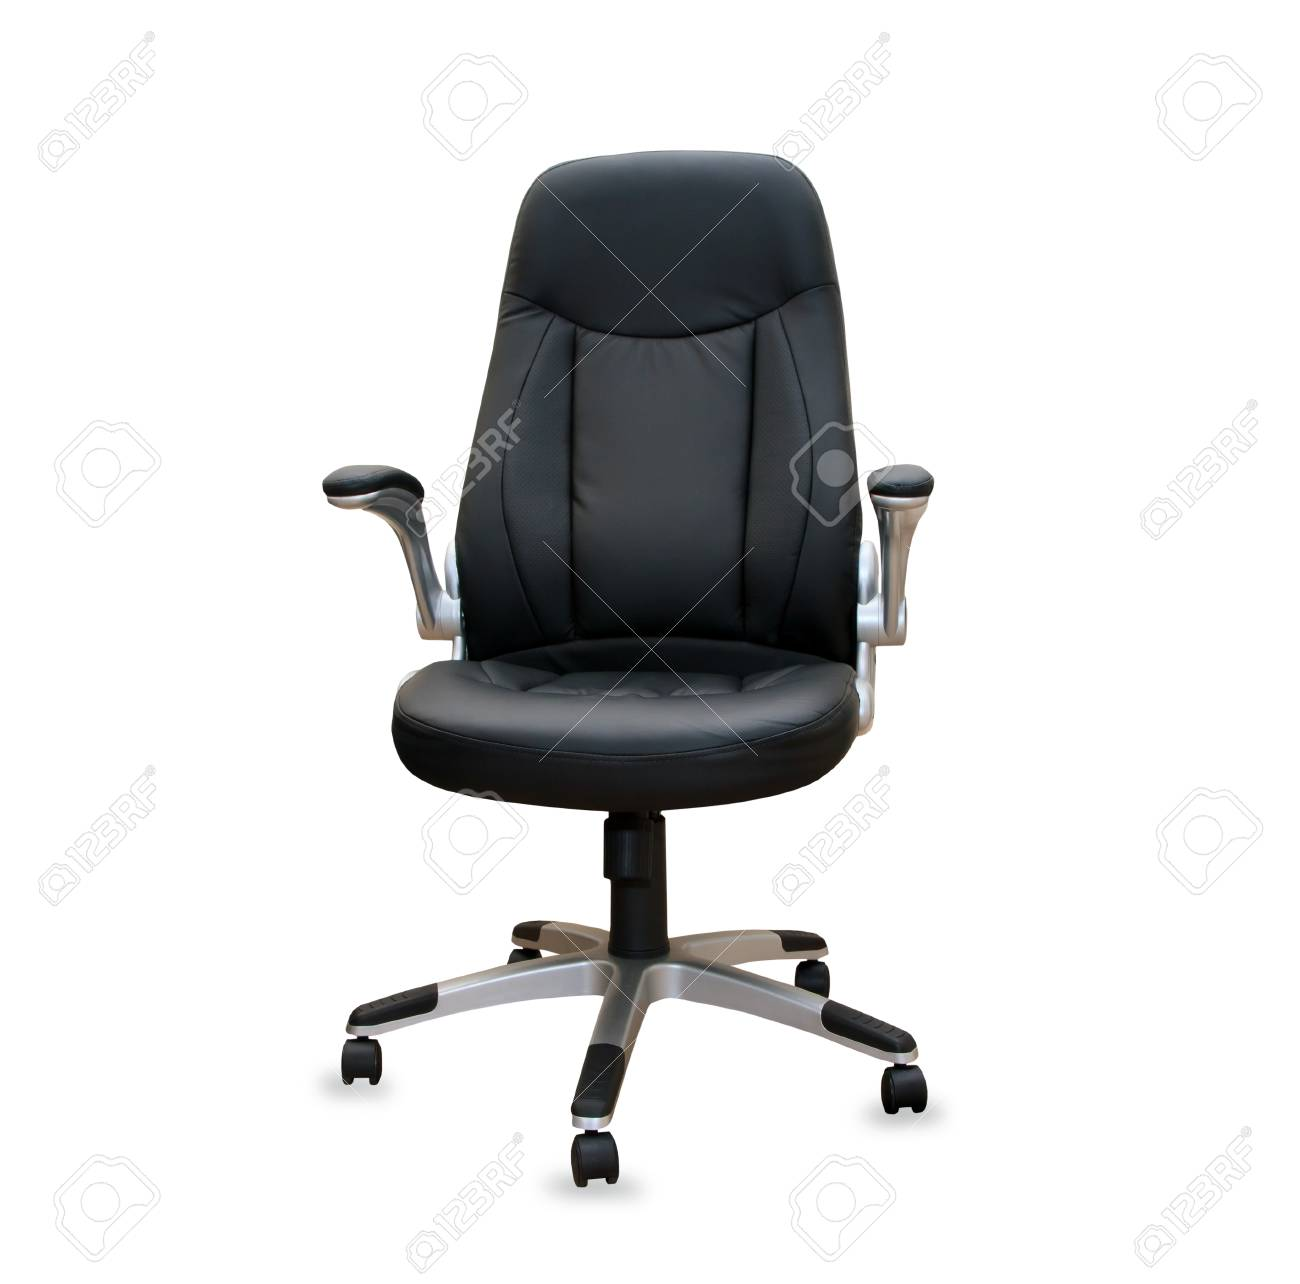 Prime Modern Office Chair From Black Leather Isolated Interior Design Ideas Gentotryabchikinfo